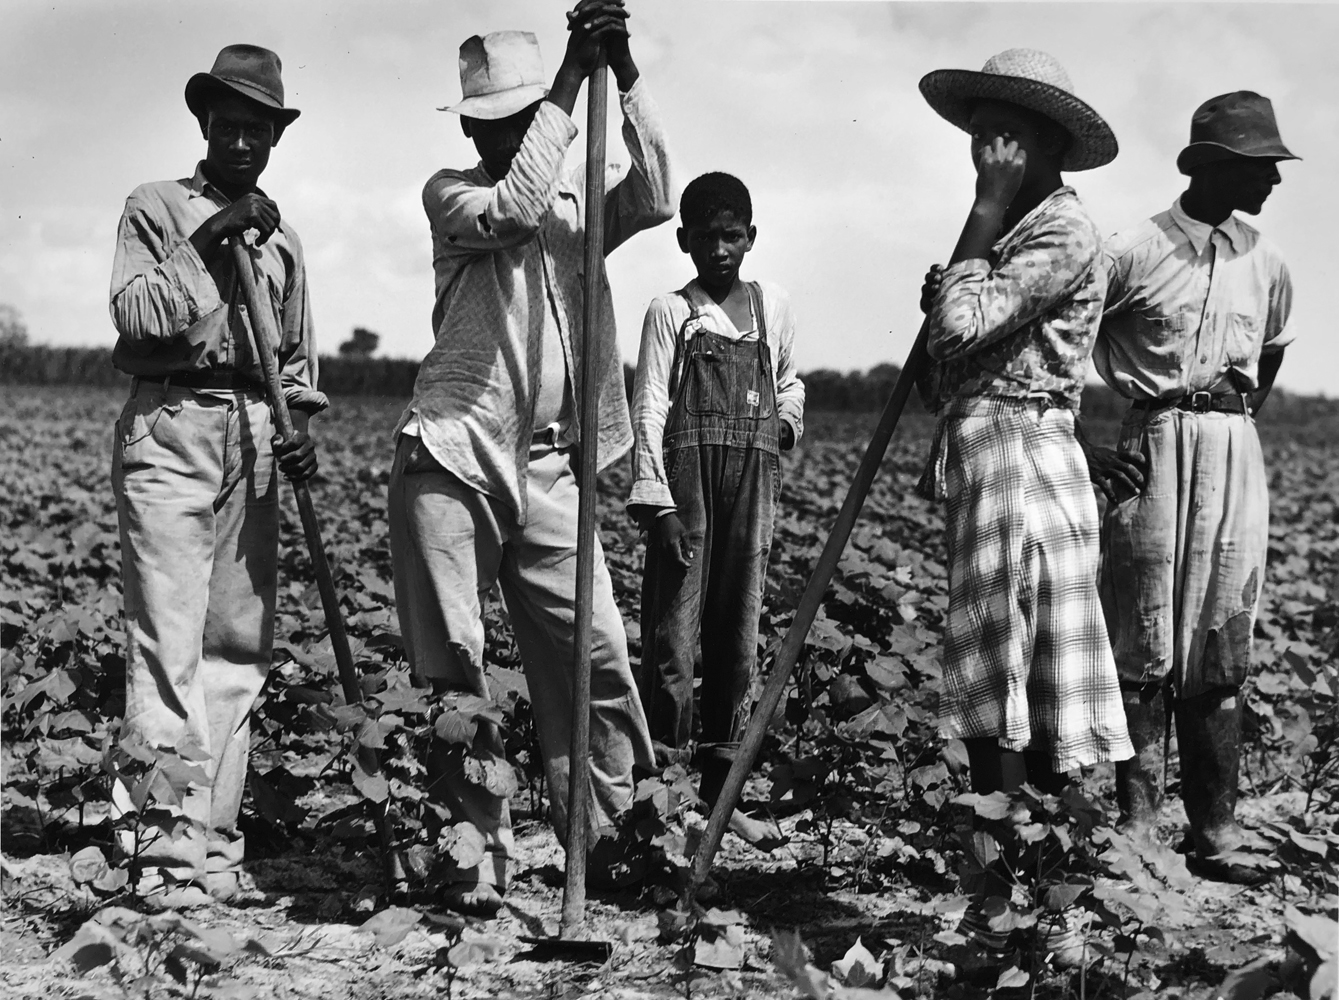 Marion Post Wolcott, Men and women working in a field, Bayou Bourdeaux Plantation, Natchitoches, LA, 1940, gelatin silver print, 11 x 14 inches, signed by artist, $3000.